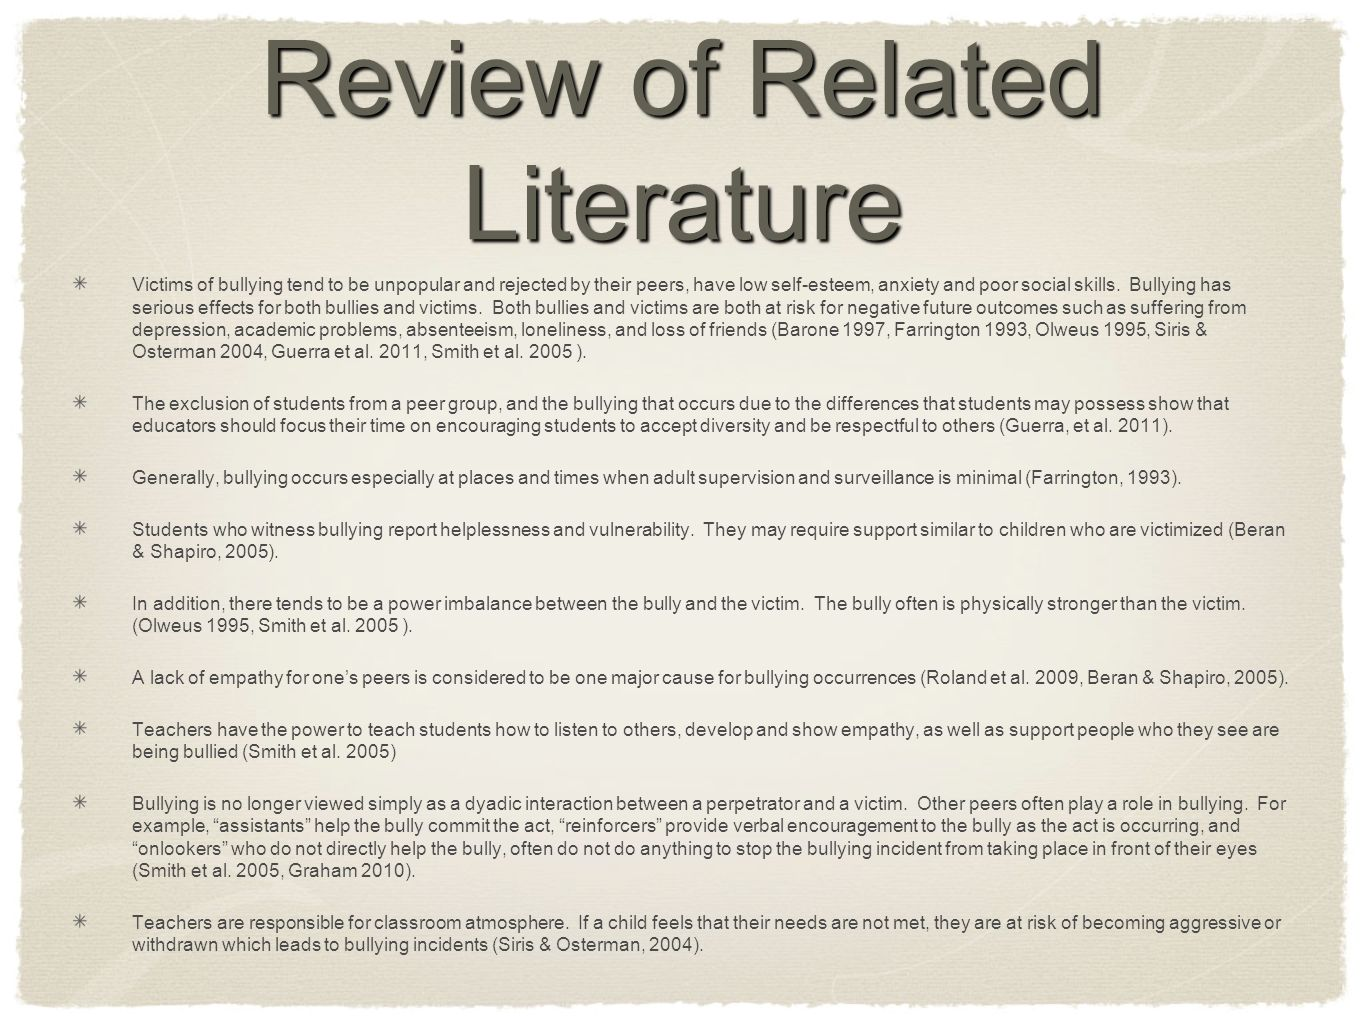 review of related foreign literature and study essay 8 review of literature 81 introduction this review covers a wide range of issues related to tobacco in nine subject areas: demand, supply, and trade of tobacco leaves, demand for cigarettes, cigarette advertising, cigarette taxes, social costs of smoking, economic significance of tobacco industry, and farm issues associated with tobacco control.